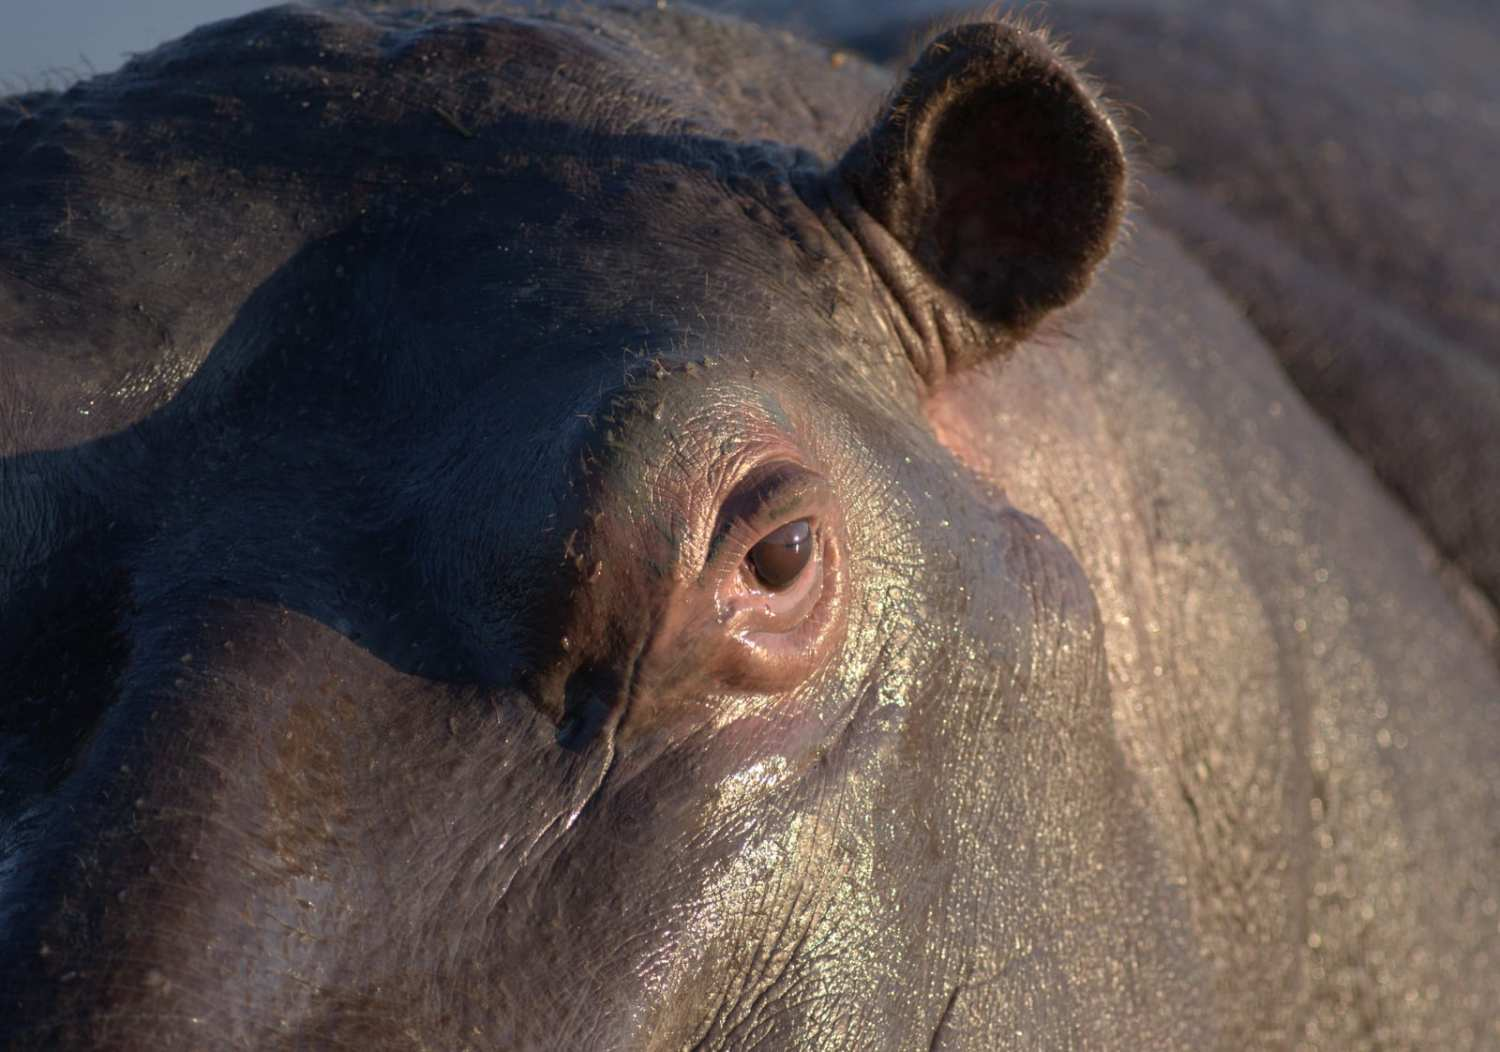 Hippo up close